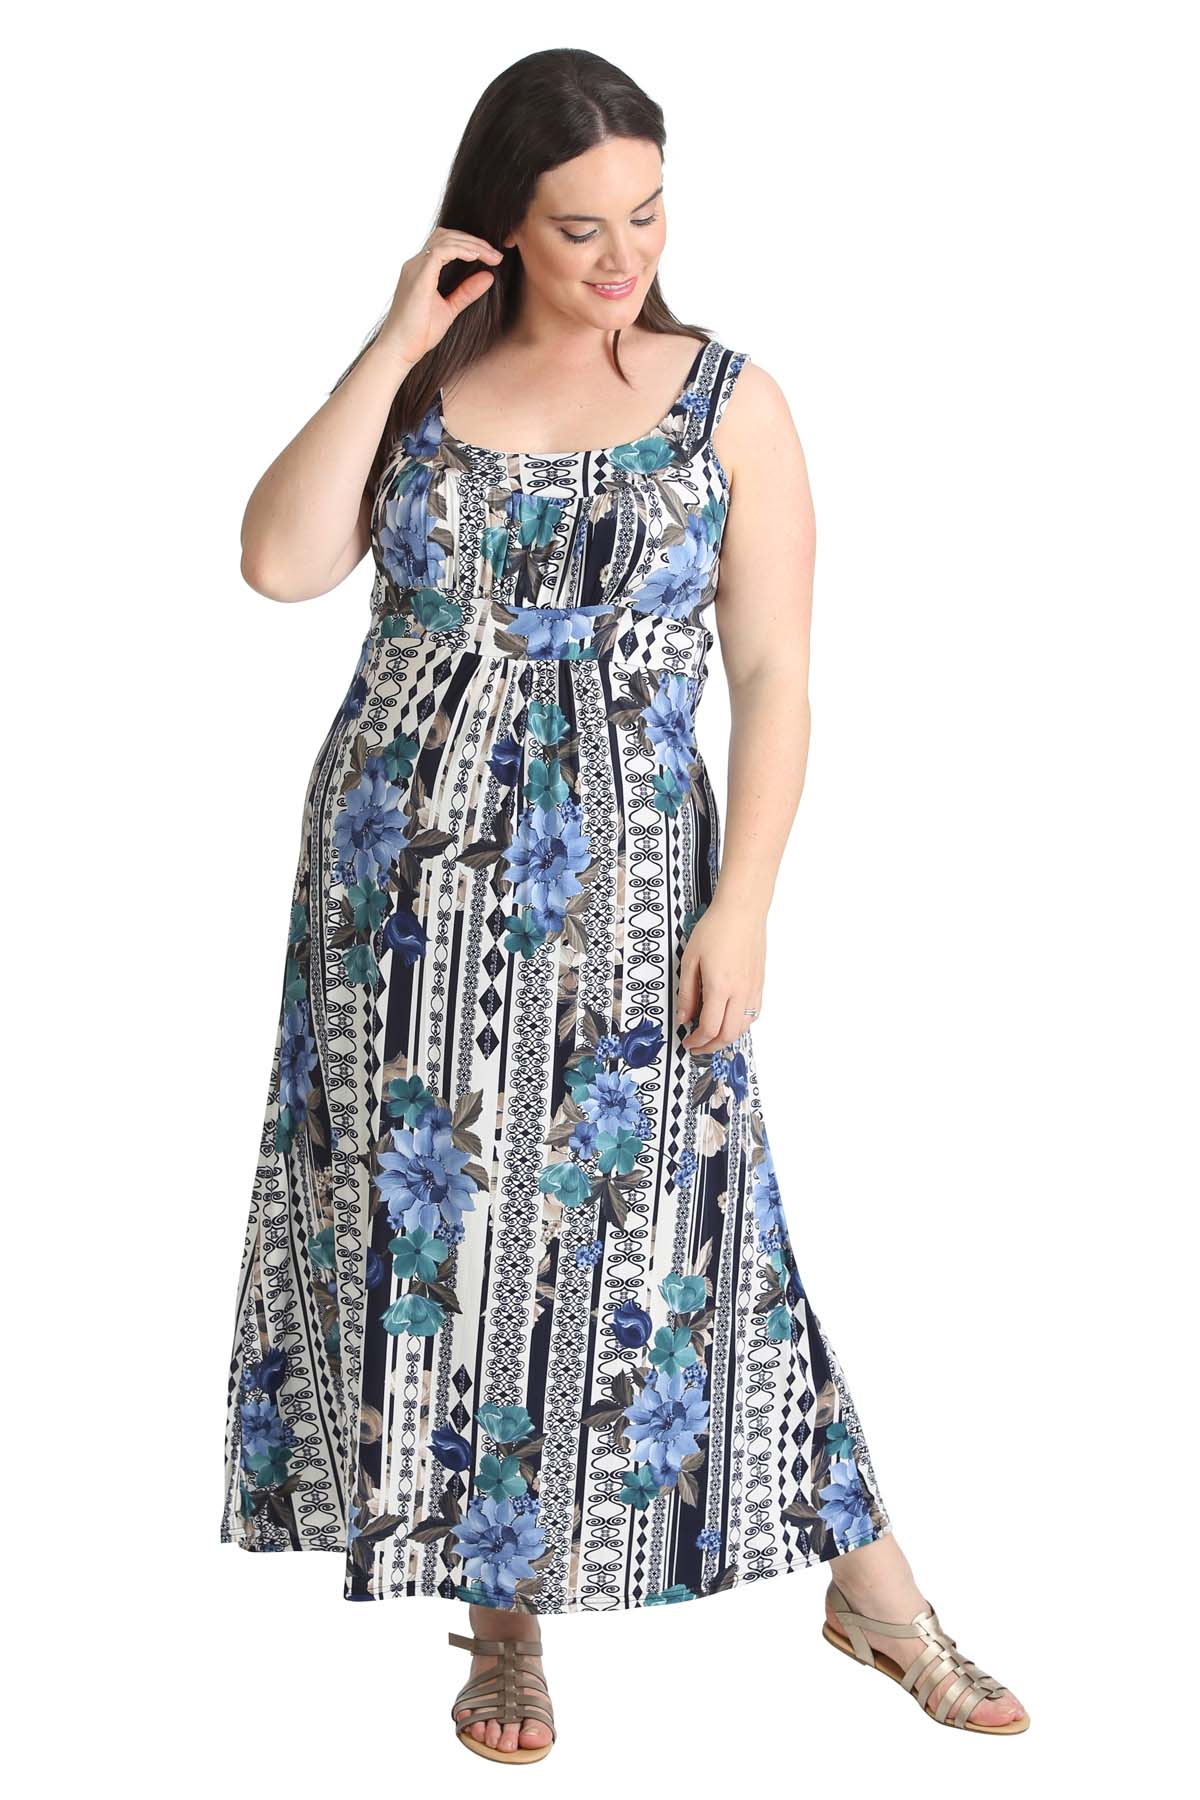 Maxi dress sale philippines